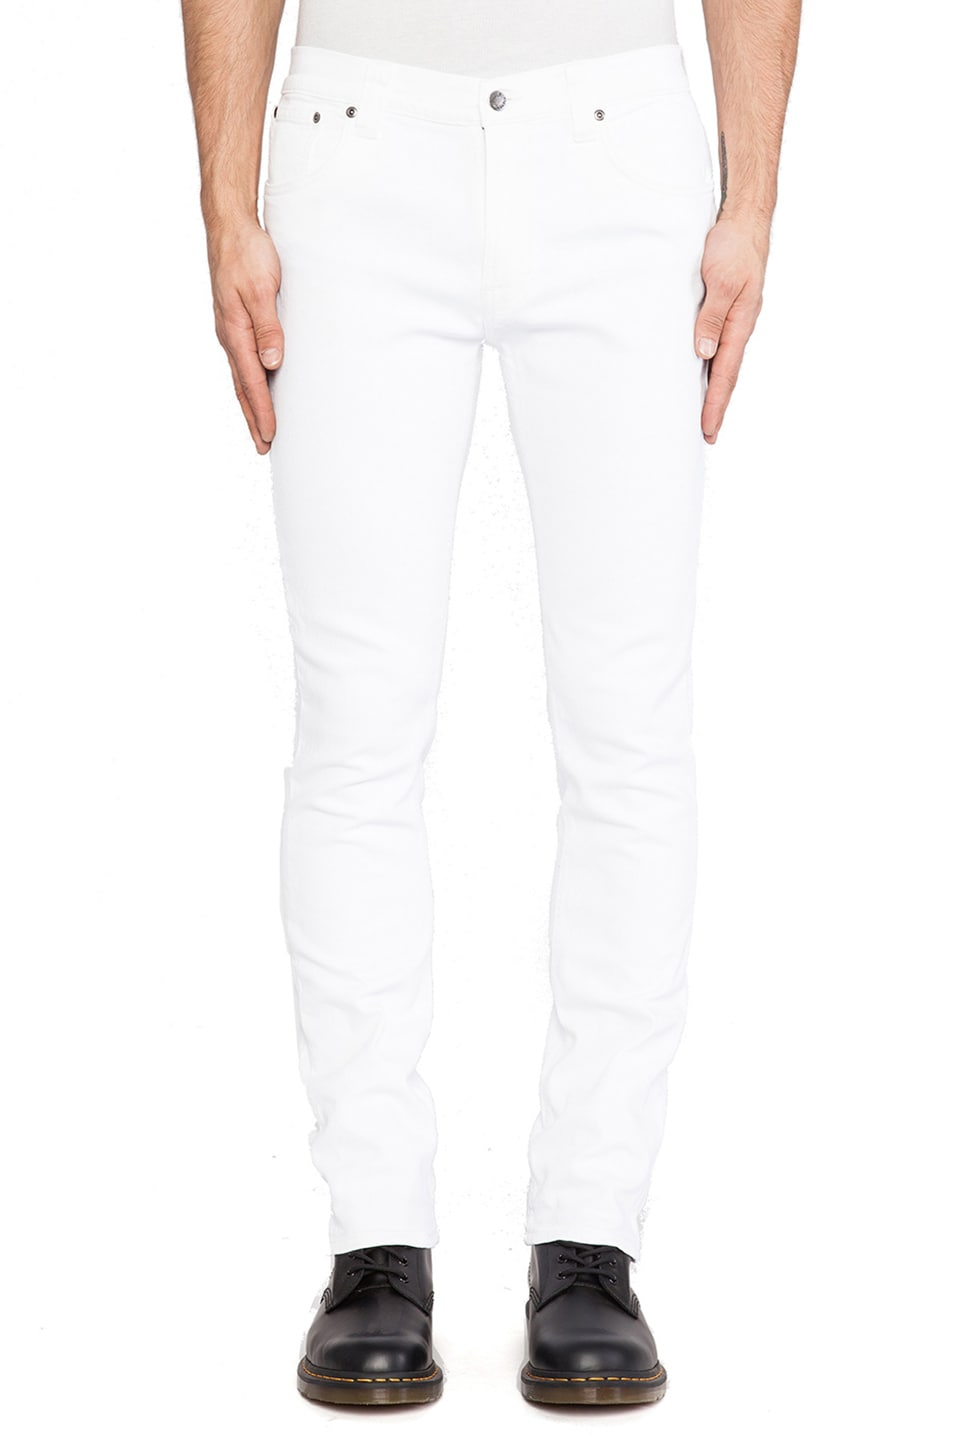 Nudie Jeans Thin Finn in Org. White Noice